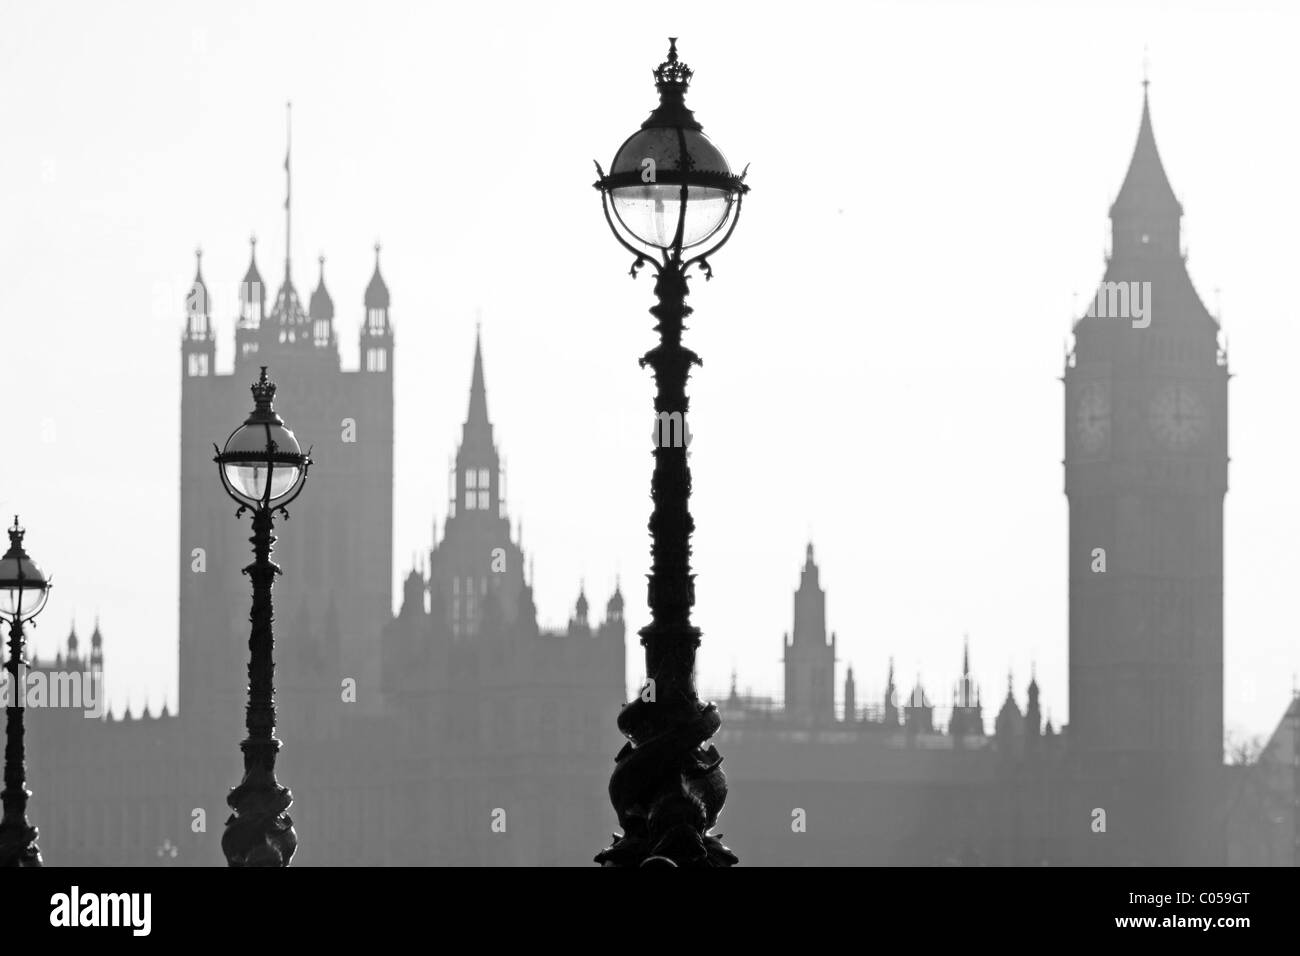 Silhouttes of Street lights on the embankment of the River Thames in London with The Houses of Parliament in the - Stock Image